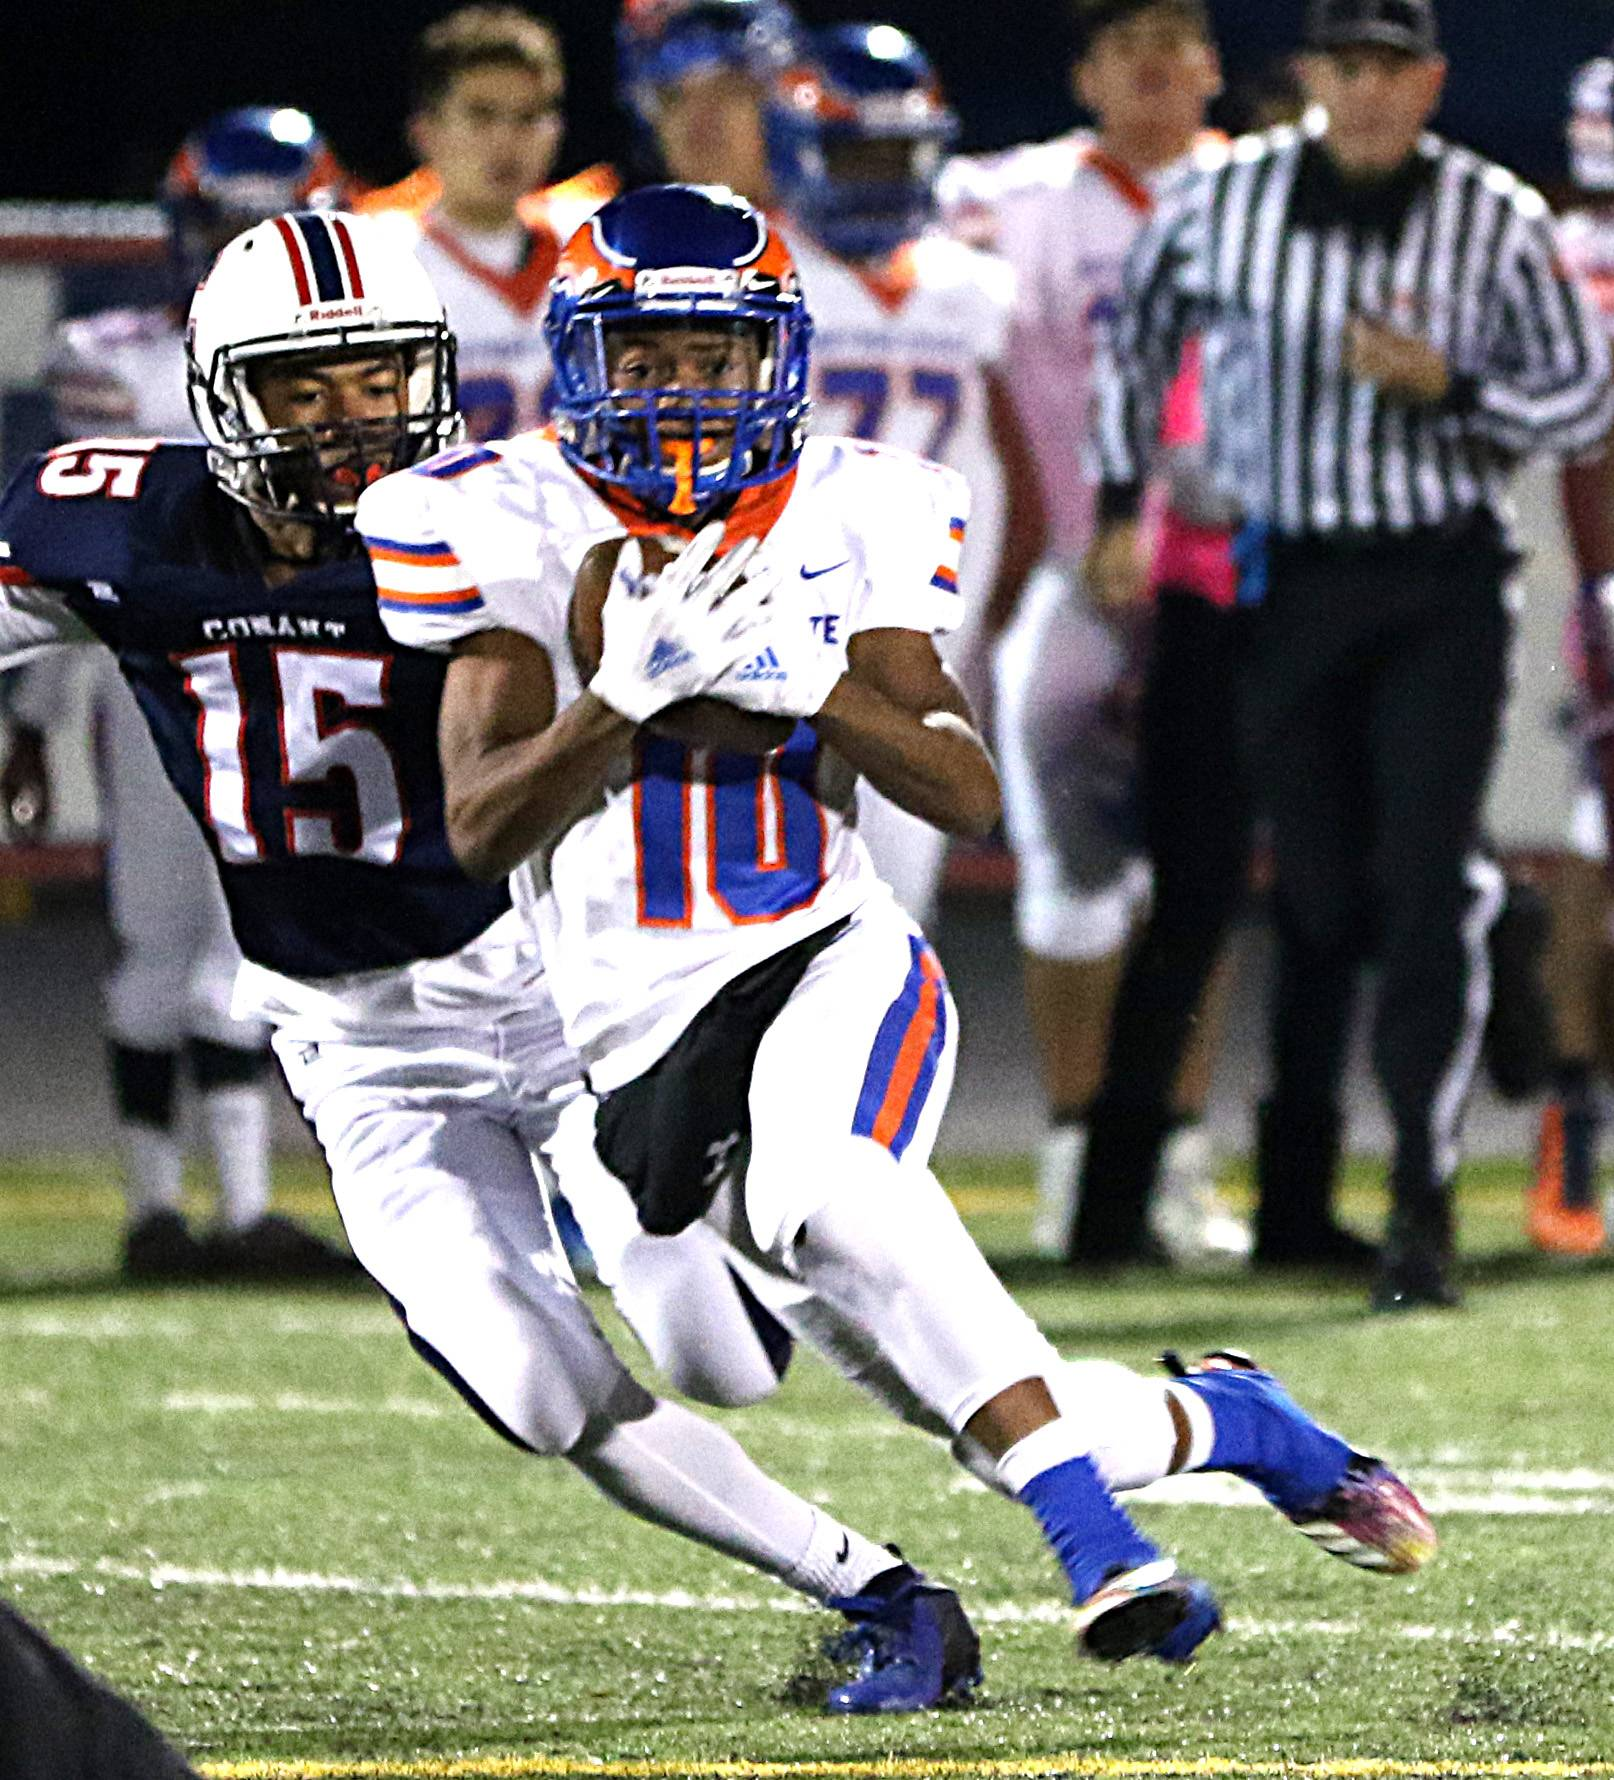 Hoffman Estates holds off Conant